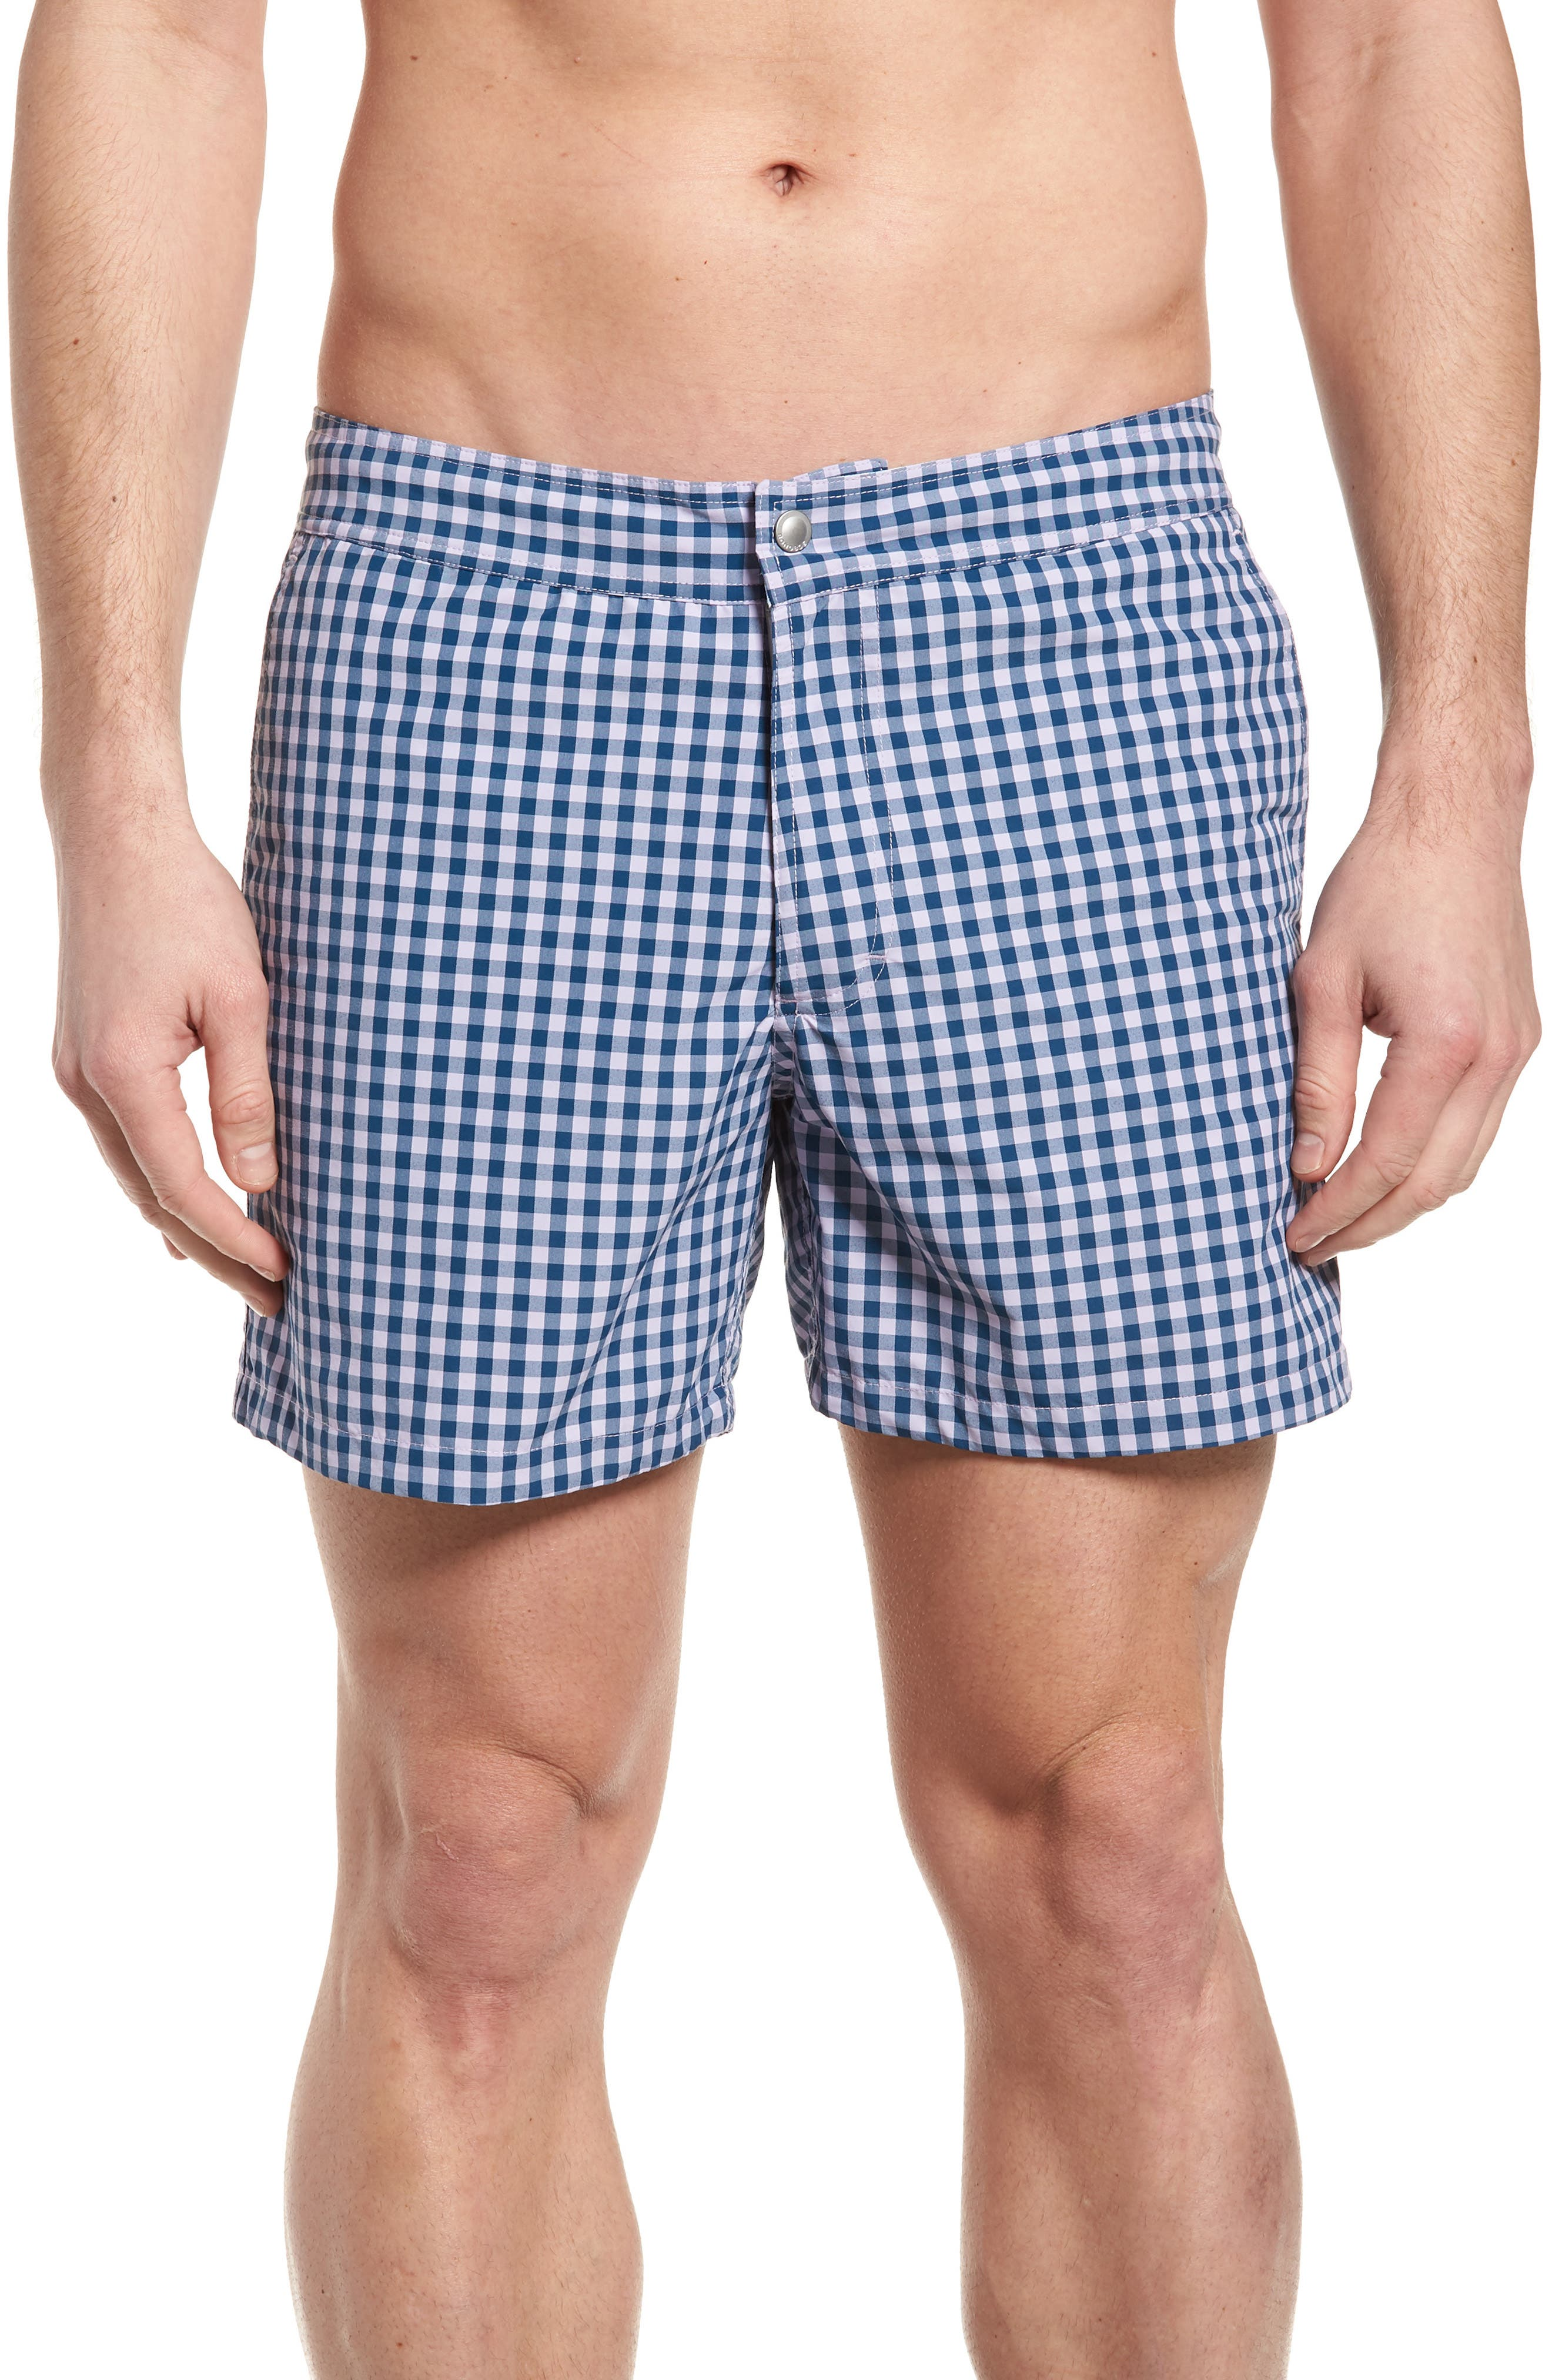 Gingham 5-Inch Swim Trunks,                         Main,                         color, 400